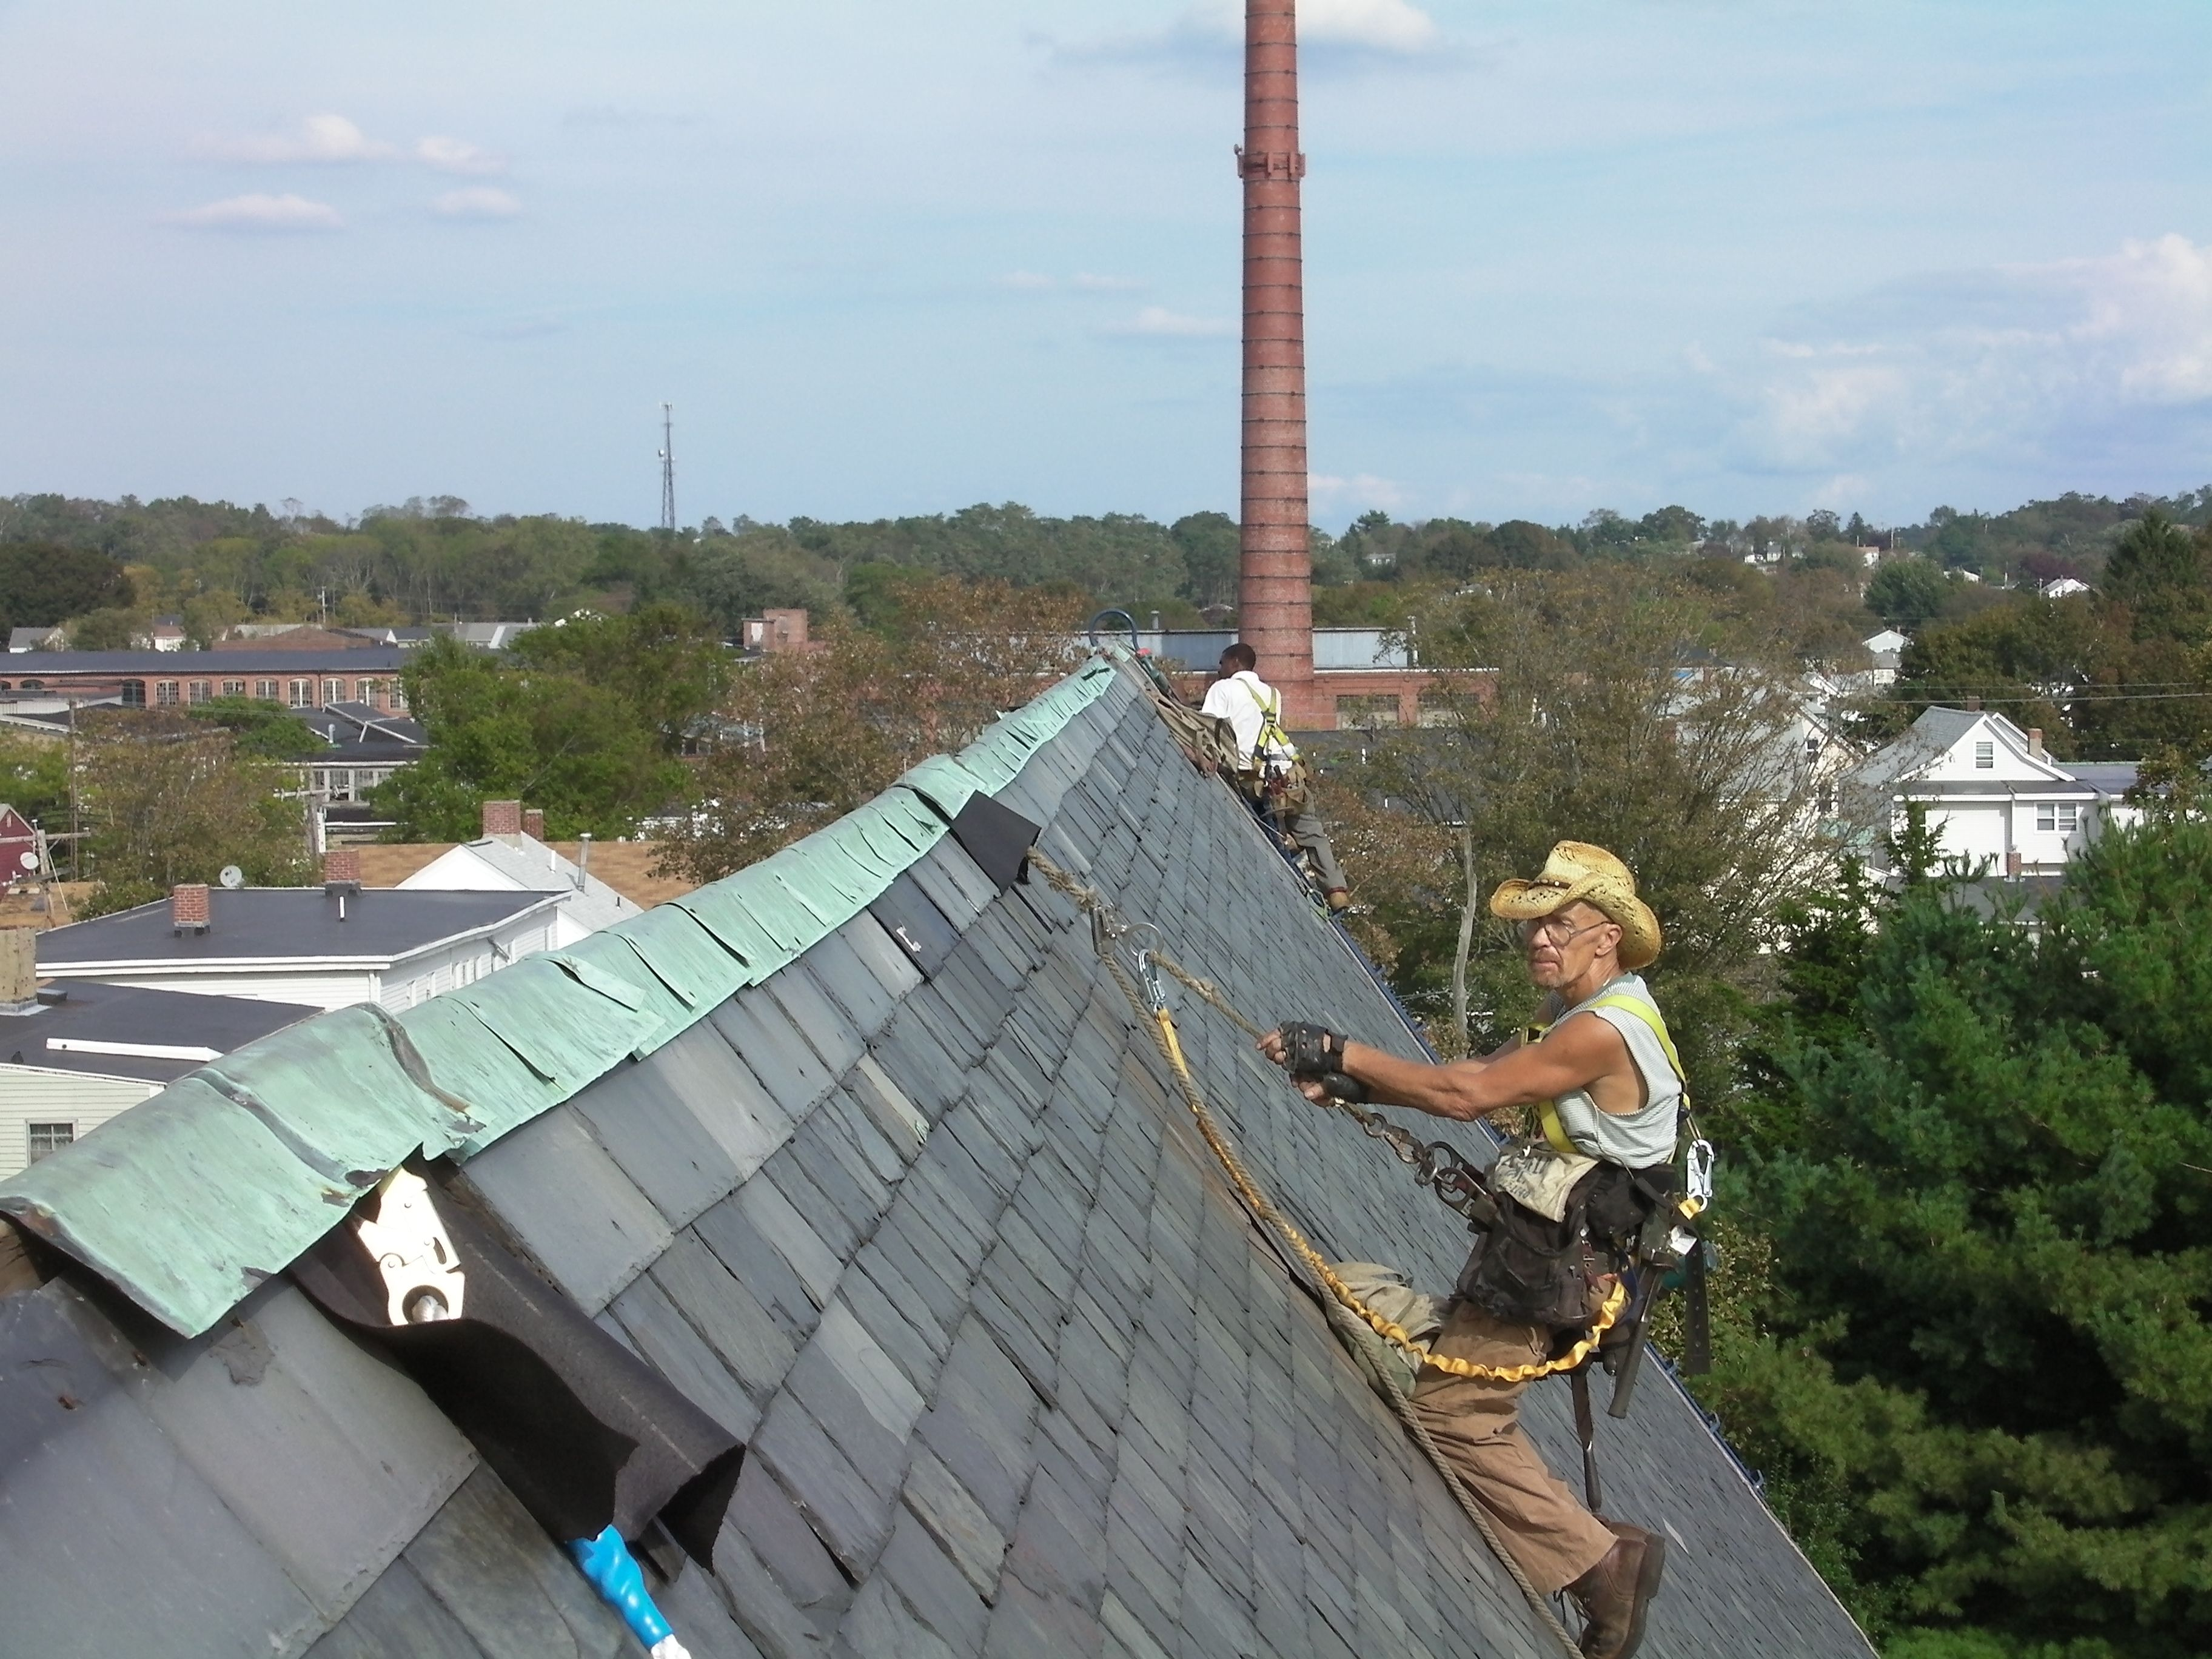 It S The Most Beautiful And Durable Roofing Material Known To Man For Centuries It S Been The Roofing Material Of Roof Architecture Modern Roofing Slate Roof